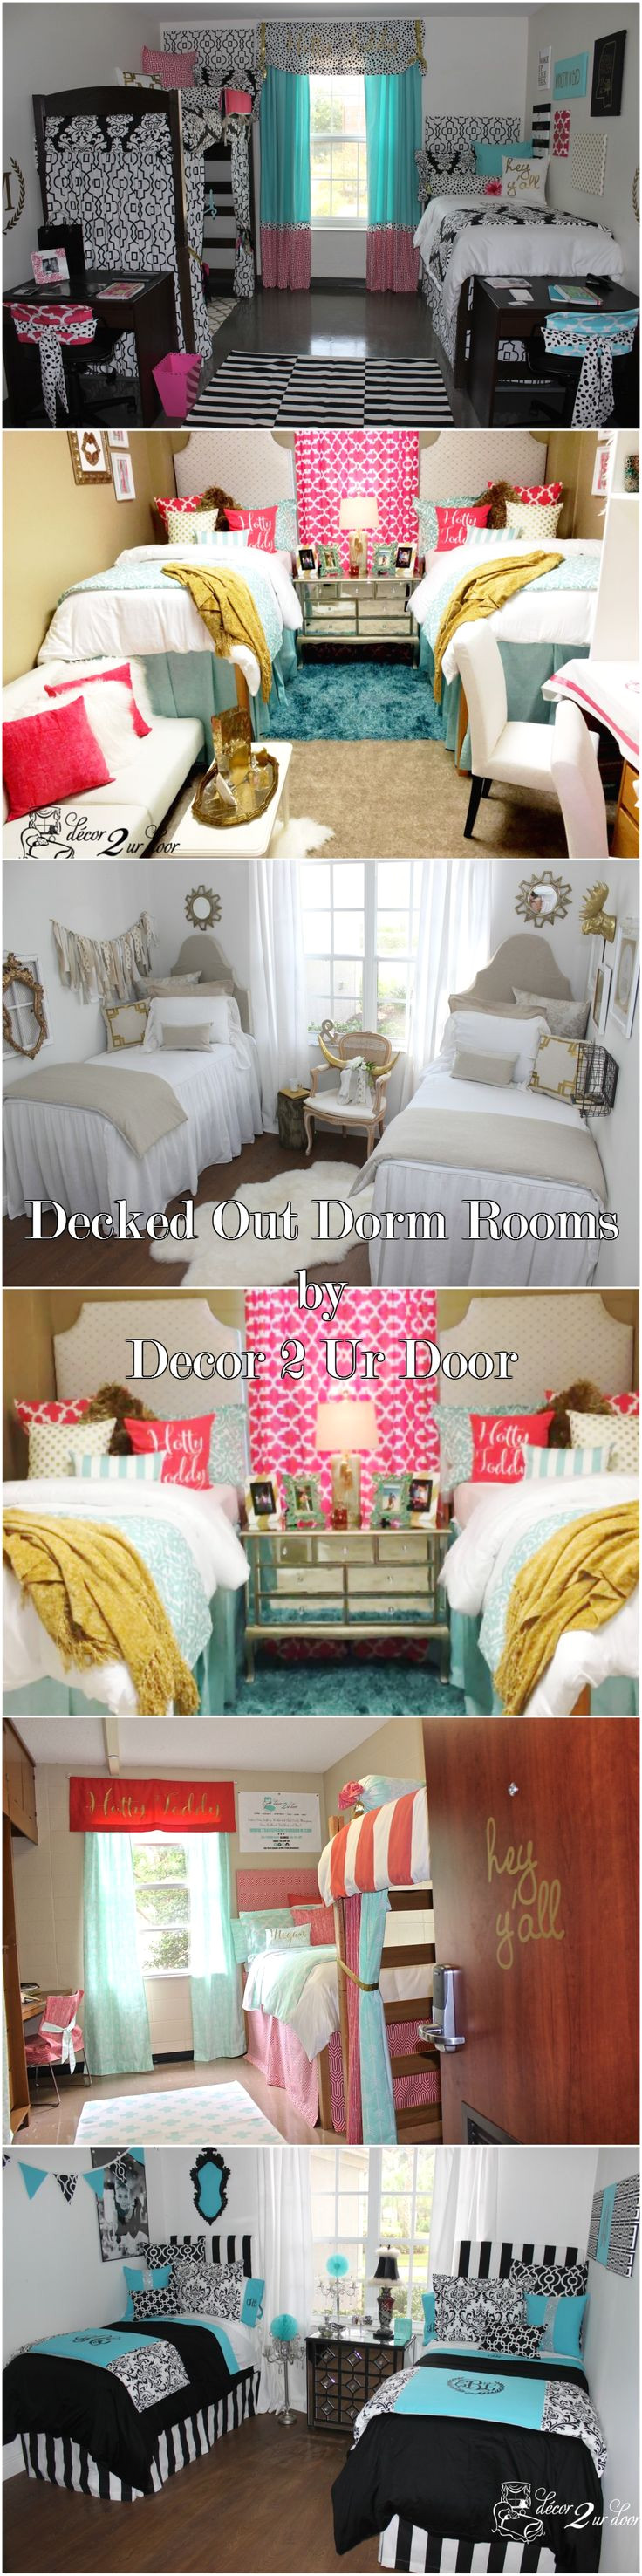 decorating a dorm room check out decor 2 ur door for the latest dorm room